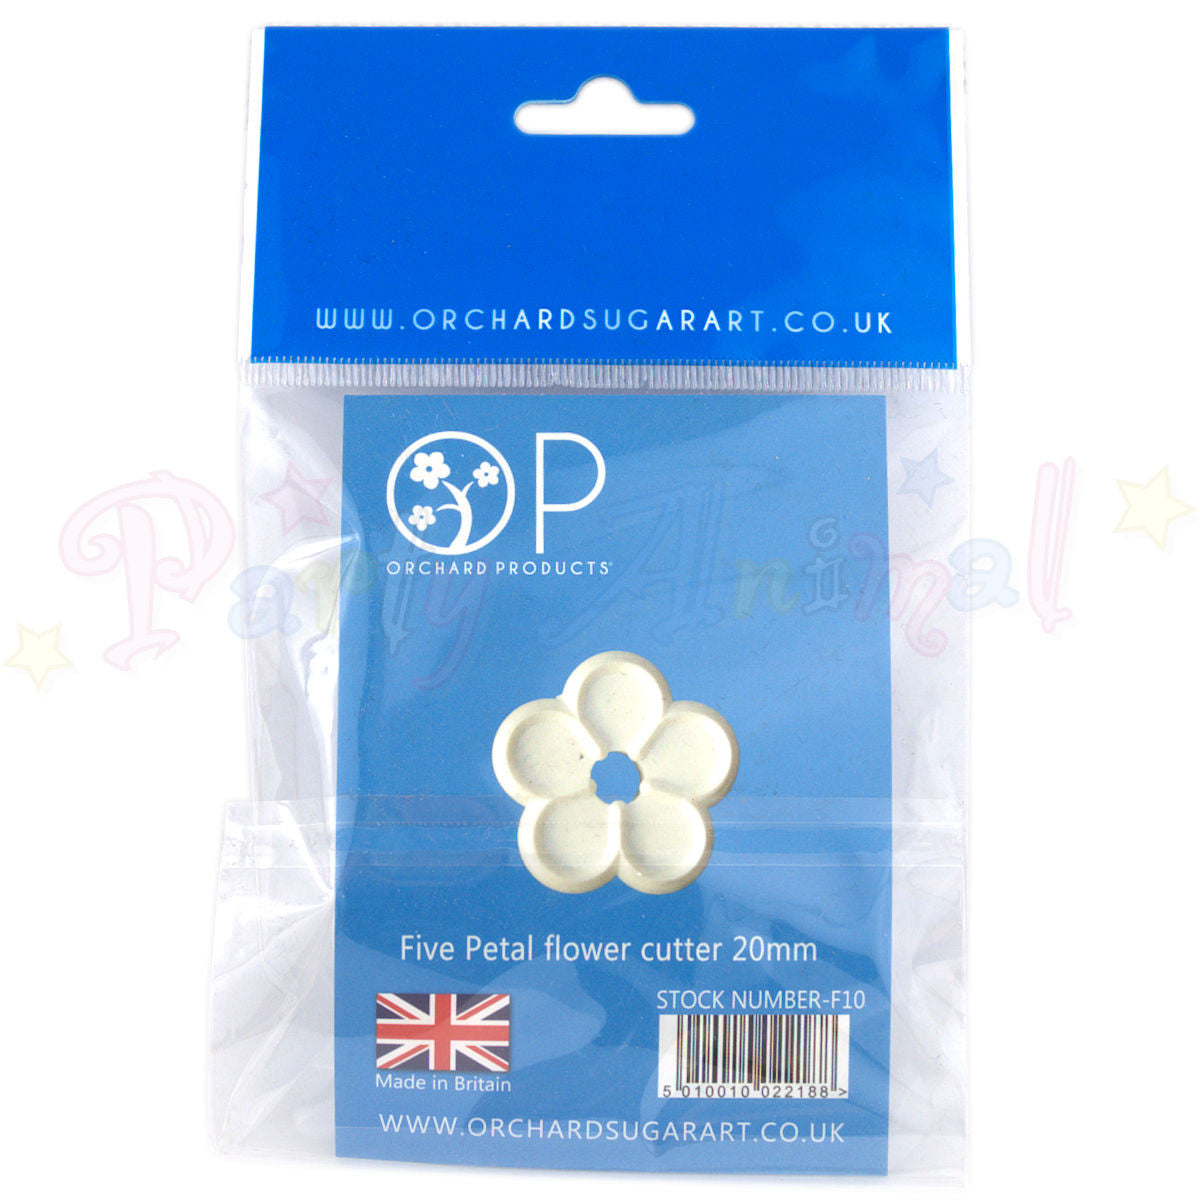 Orchard Products 20mm 5 Petal Flower Cutter F10